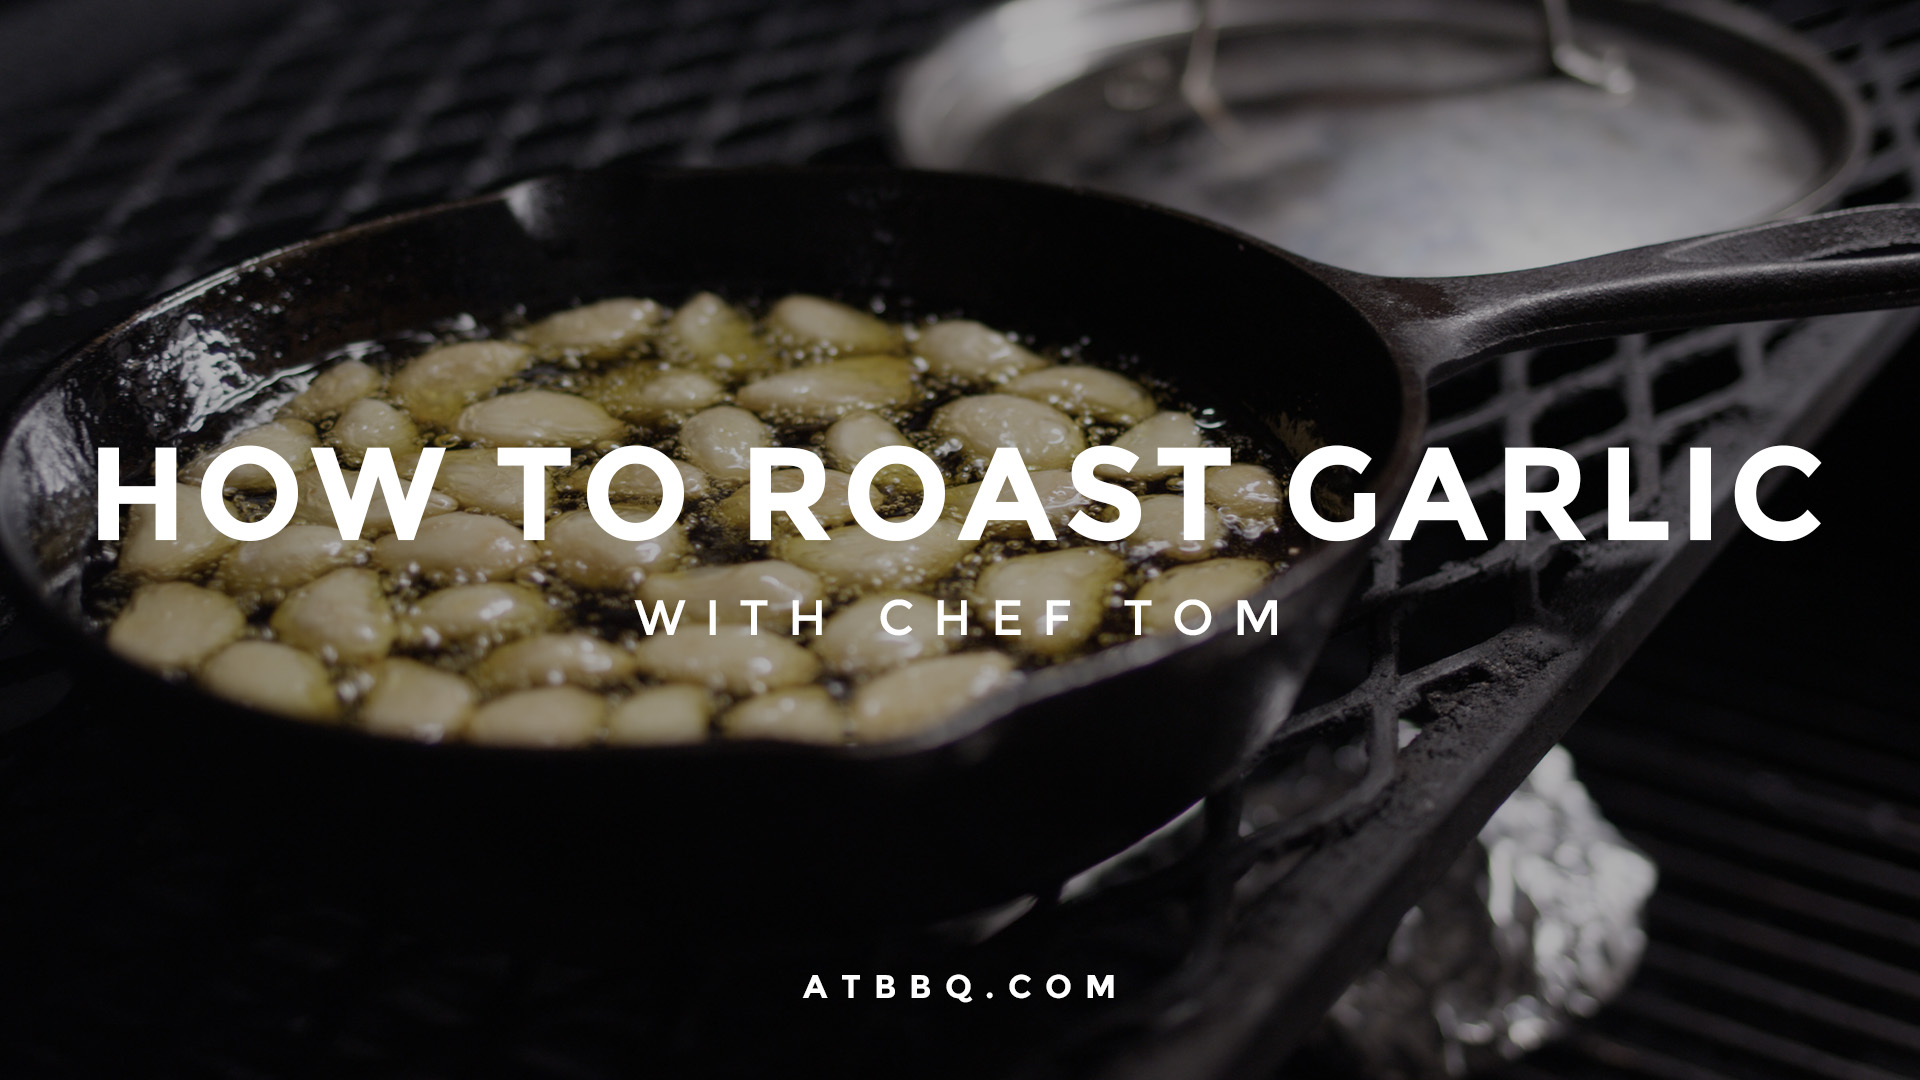 How to Roast Garlic Tips & Techniques